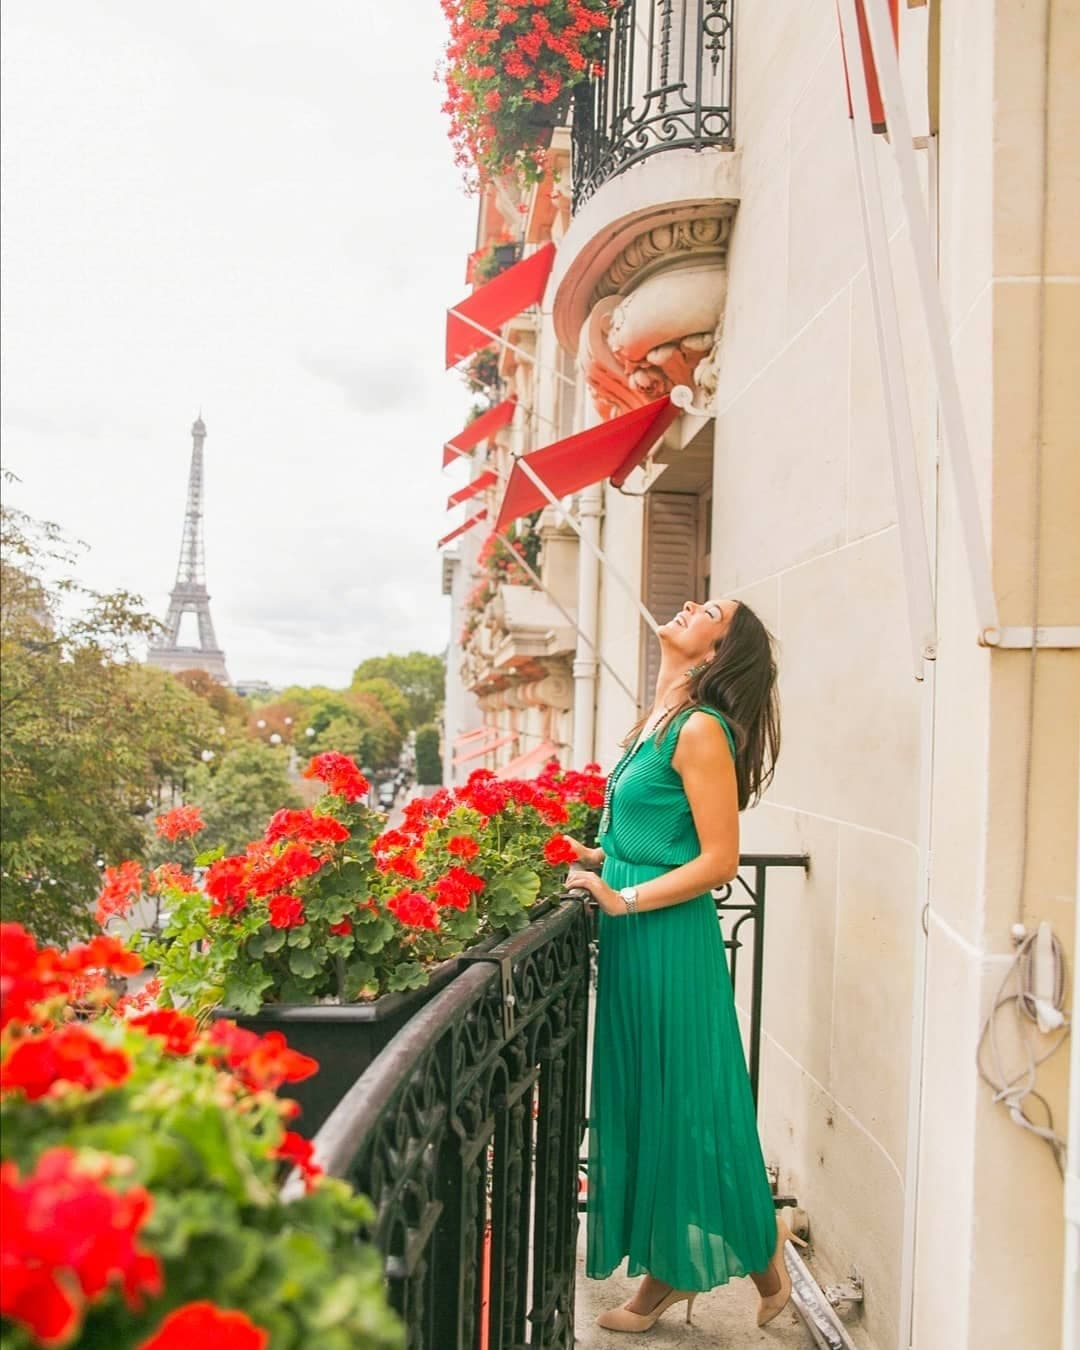 Woman in green dress on red flowered balcony in front of the Eiffel Tower, Paris